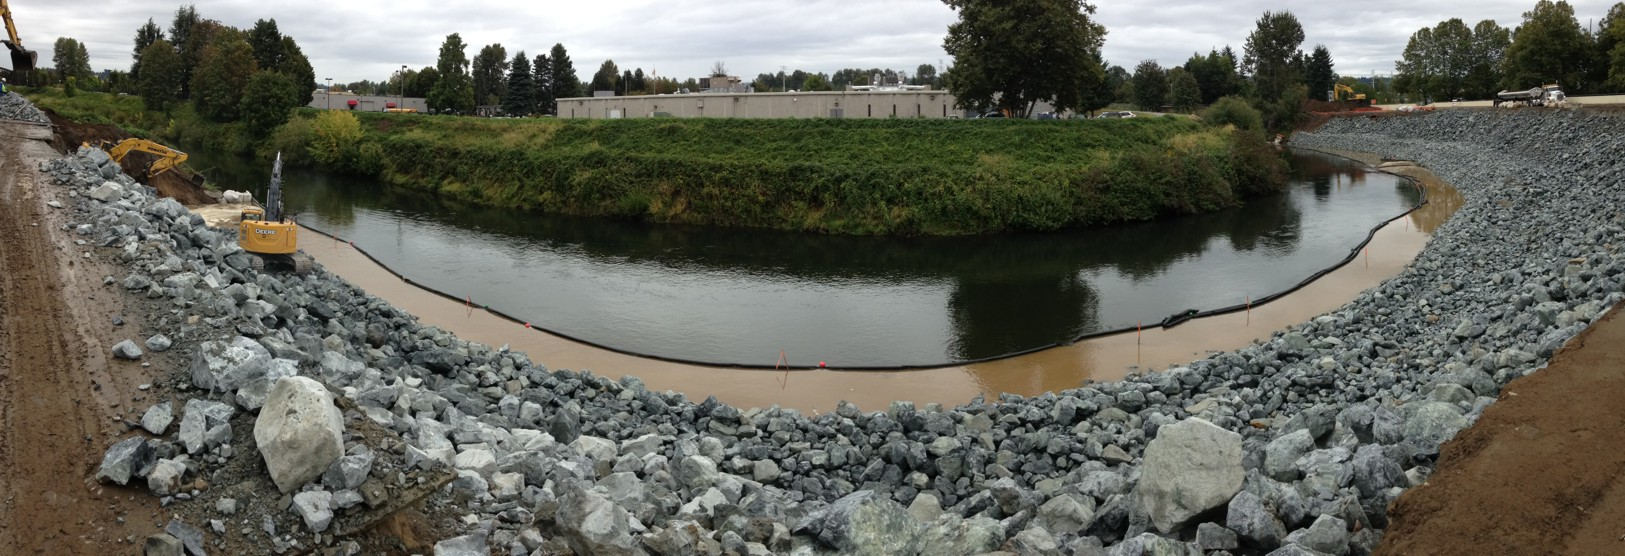 Flexible turbidity curtain protects waterways from construction silt.